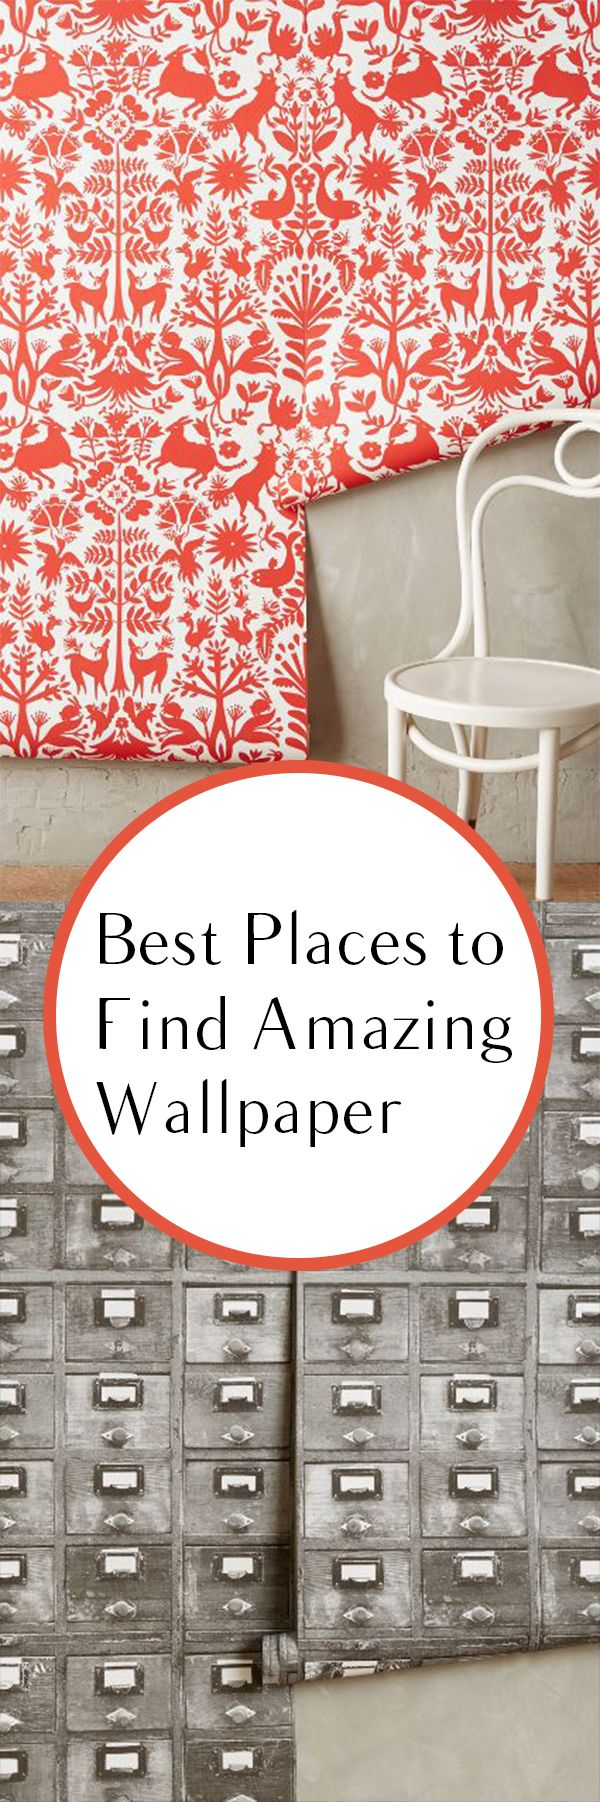 Amazing Places To Buy Wallpaper Great Ideas For The Most Unique And Trendy Wallpaper For